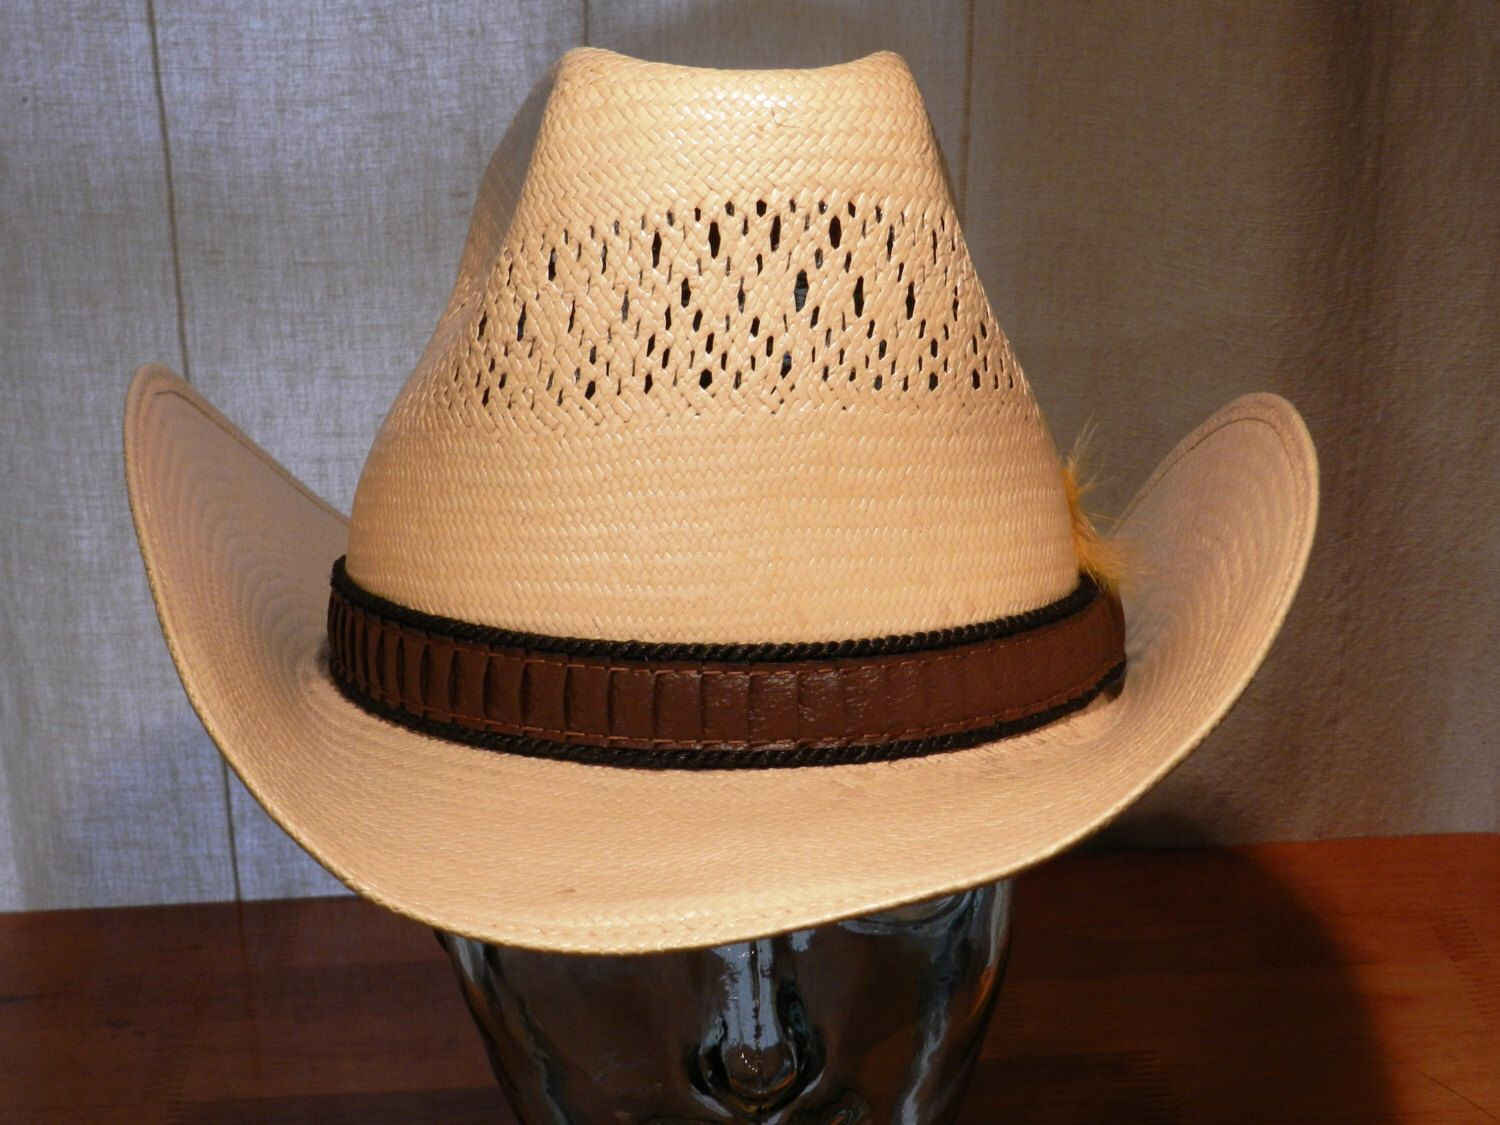 709530e94b28b Stetson Roadrunner Bryantcote Straw Cowboy Hat with Leather Hatband and  Yellow Feather Size 7 1